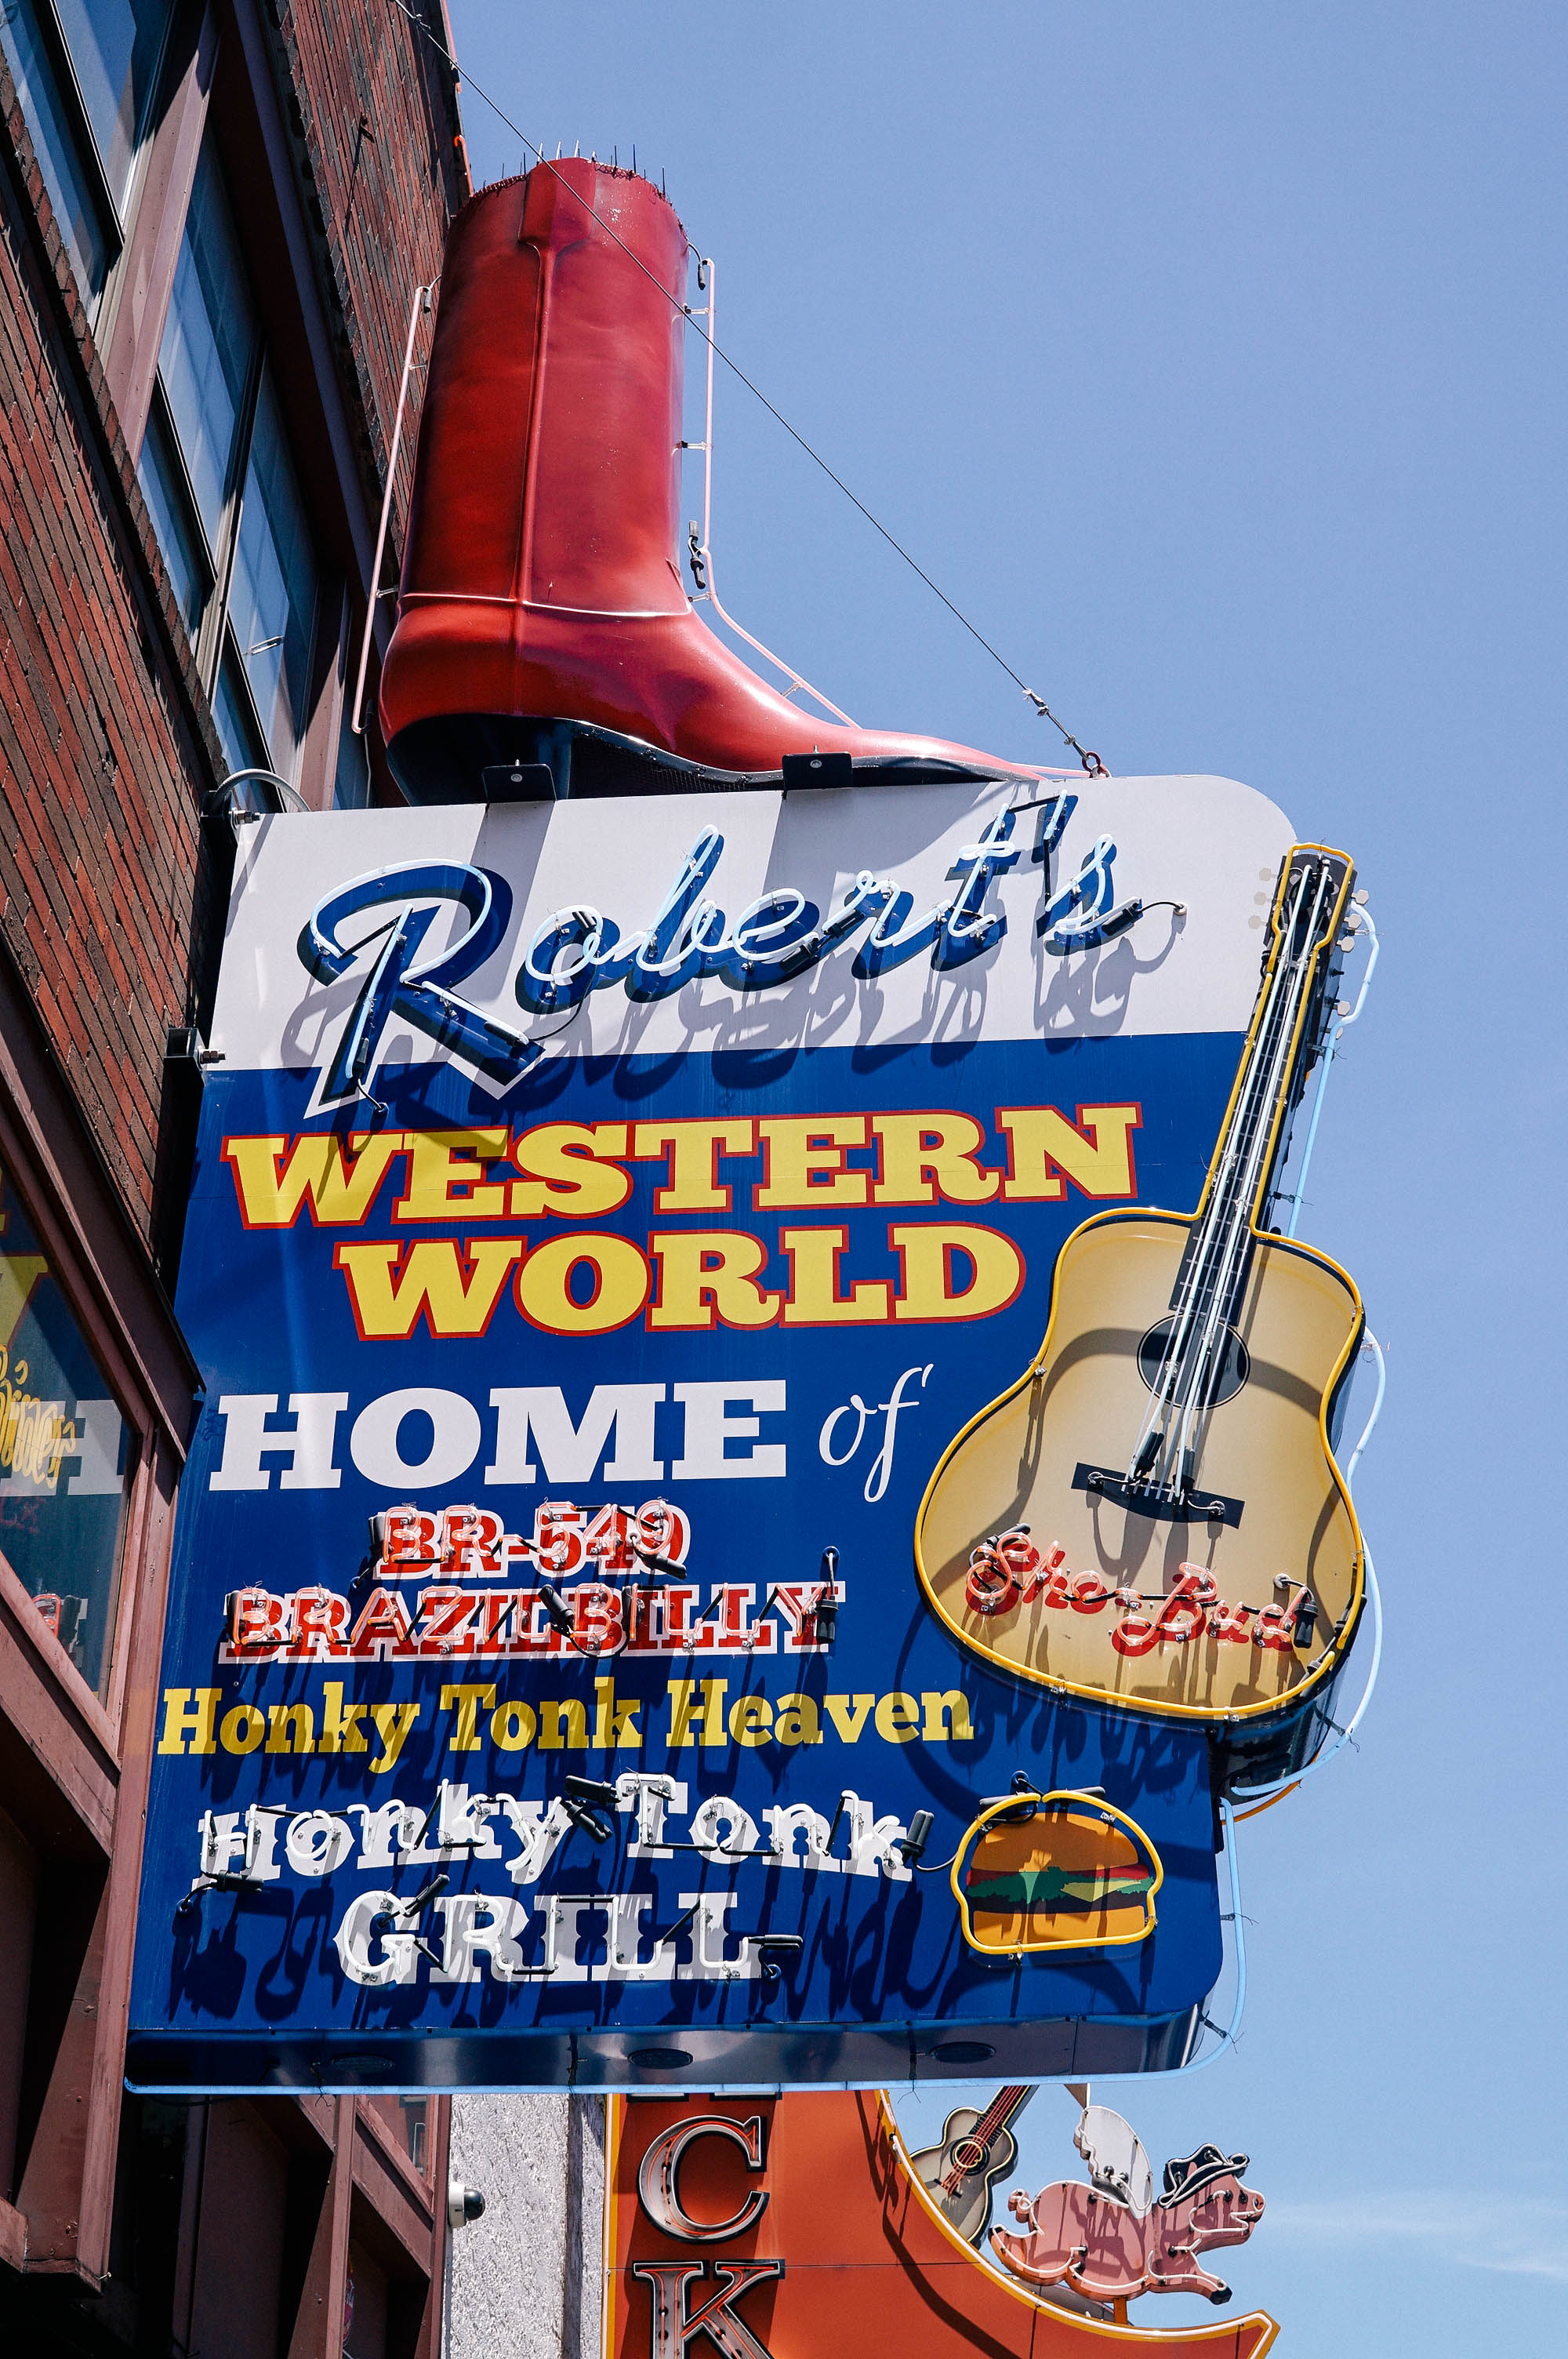 robert's western world honky tonk - Nashville, TN